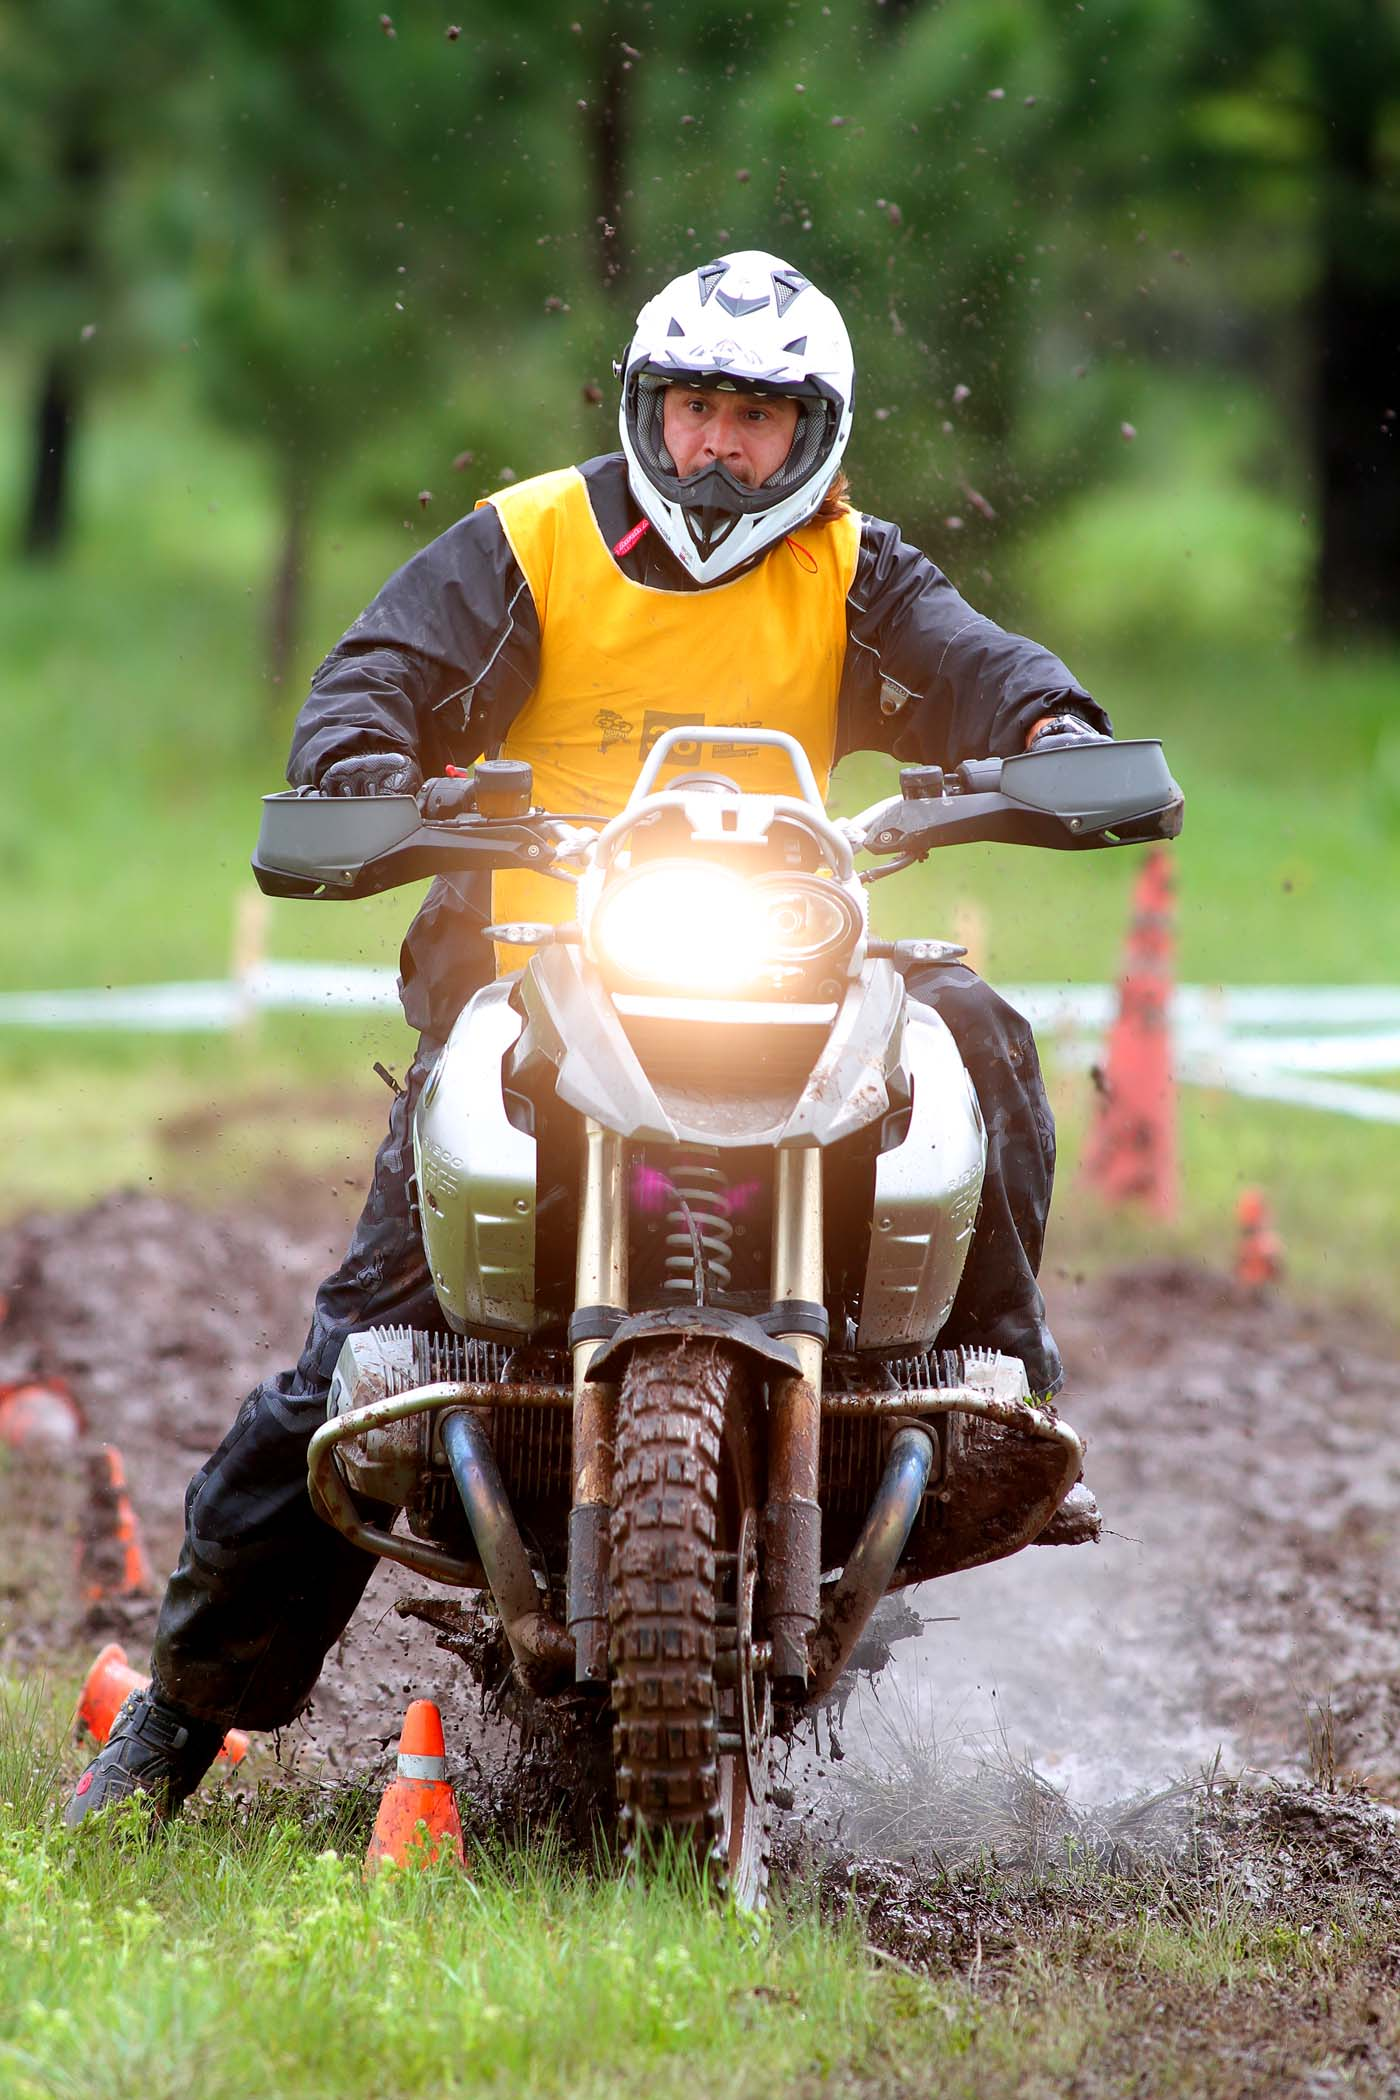 BMW GS TROPHY SOUTH AMERICA 2012